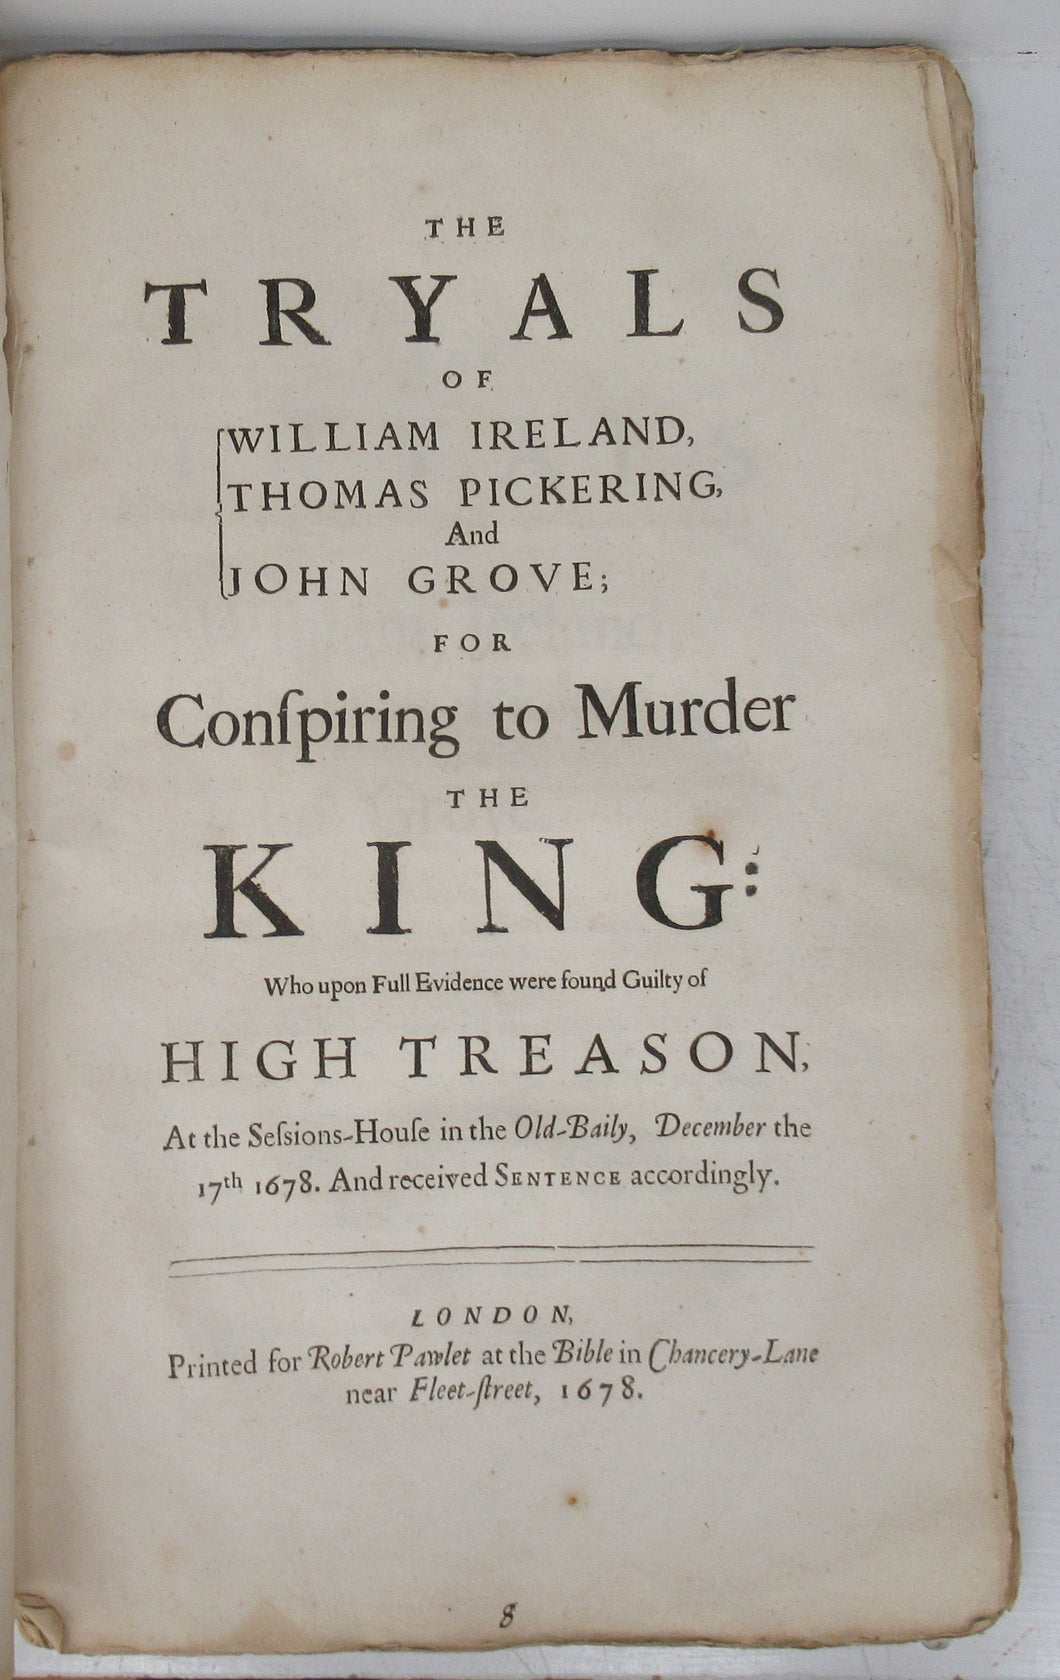 The Tryals of William Ireland, Thomas Pickering, And John Grove; For Conspiring to Murder the King